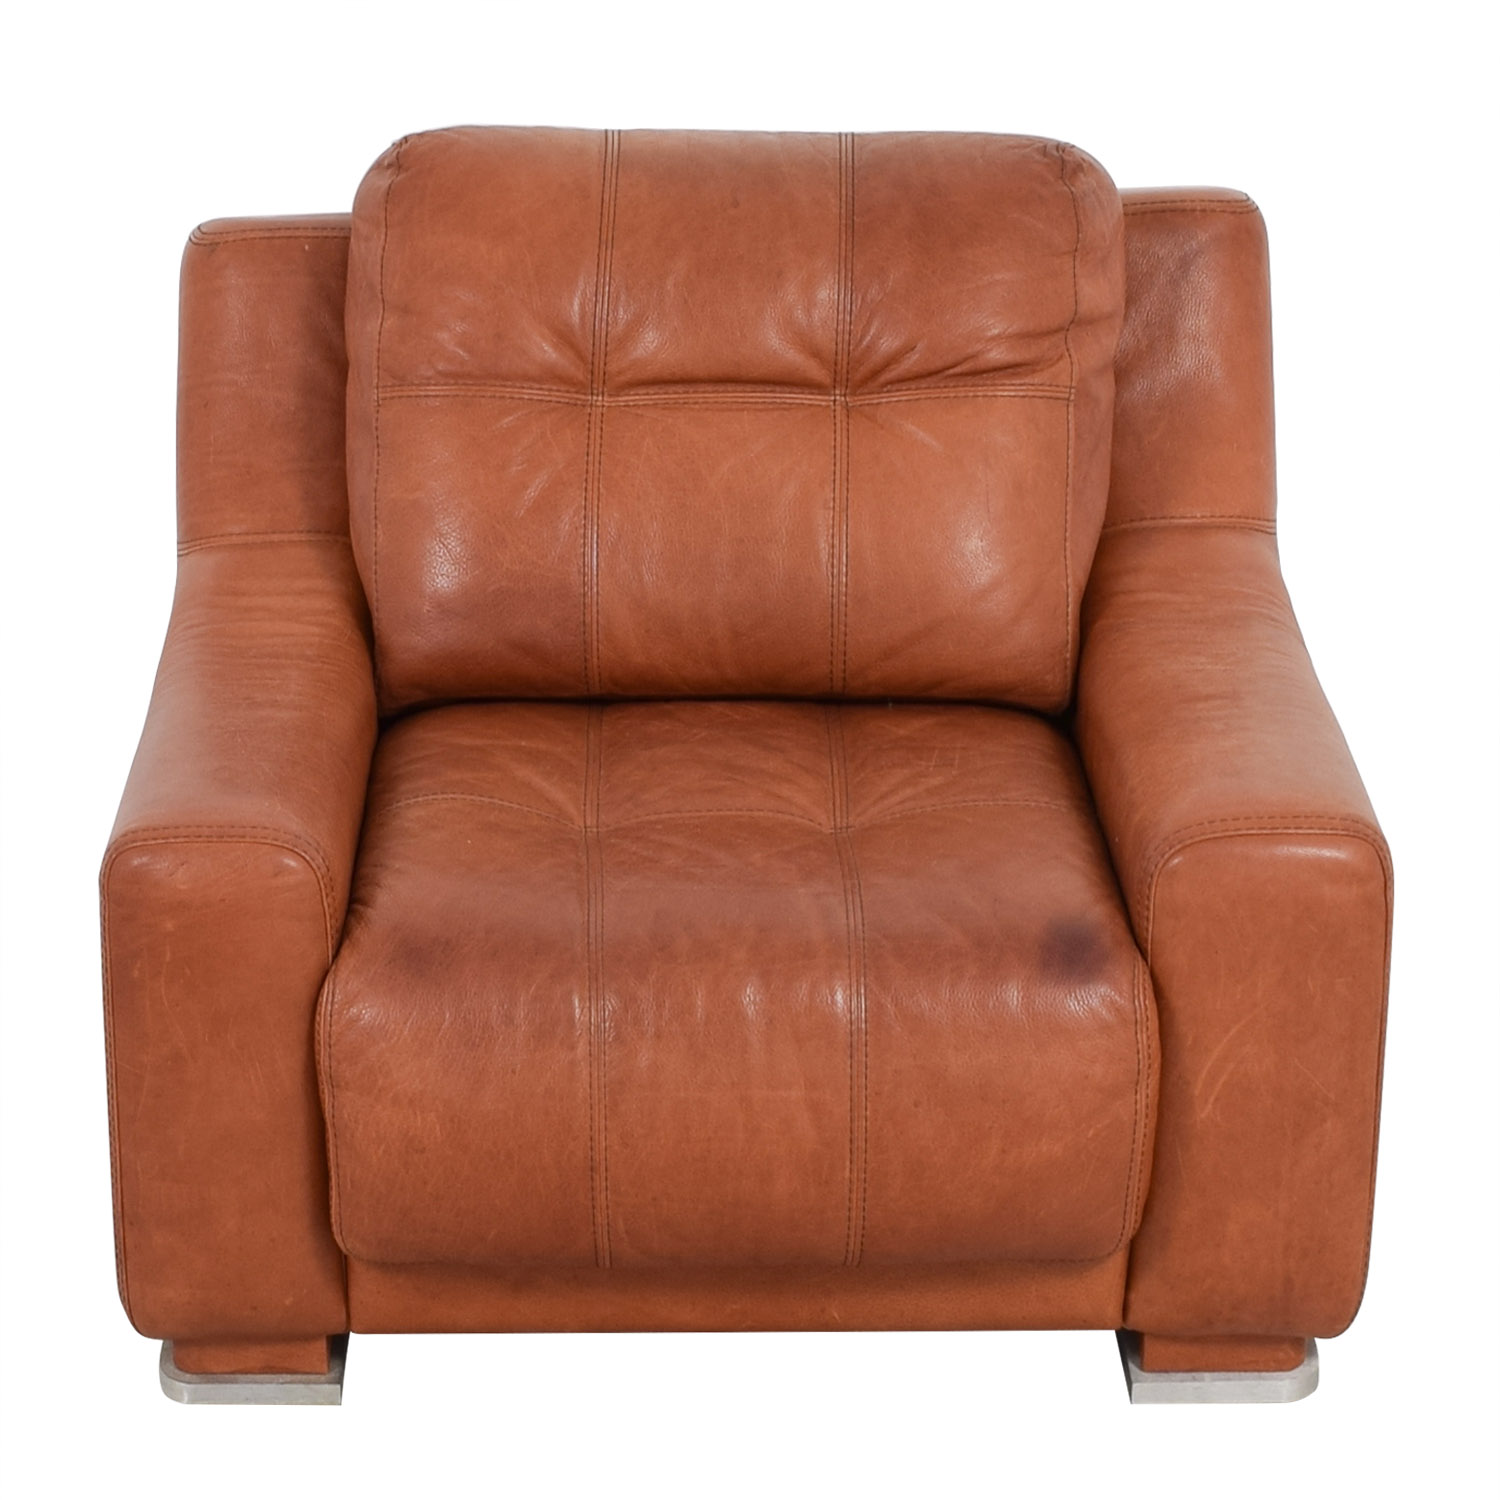 shop Contempo Leather Accent Chair Contempo Accent Chairs